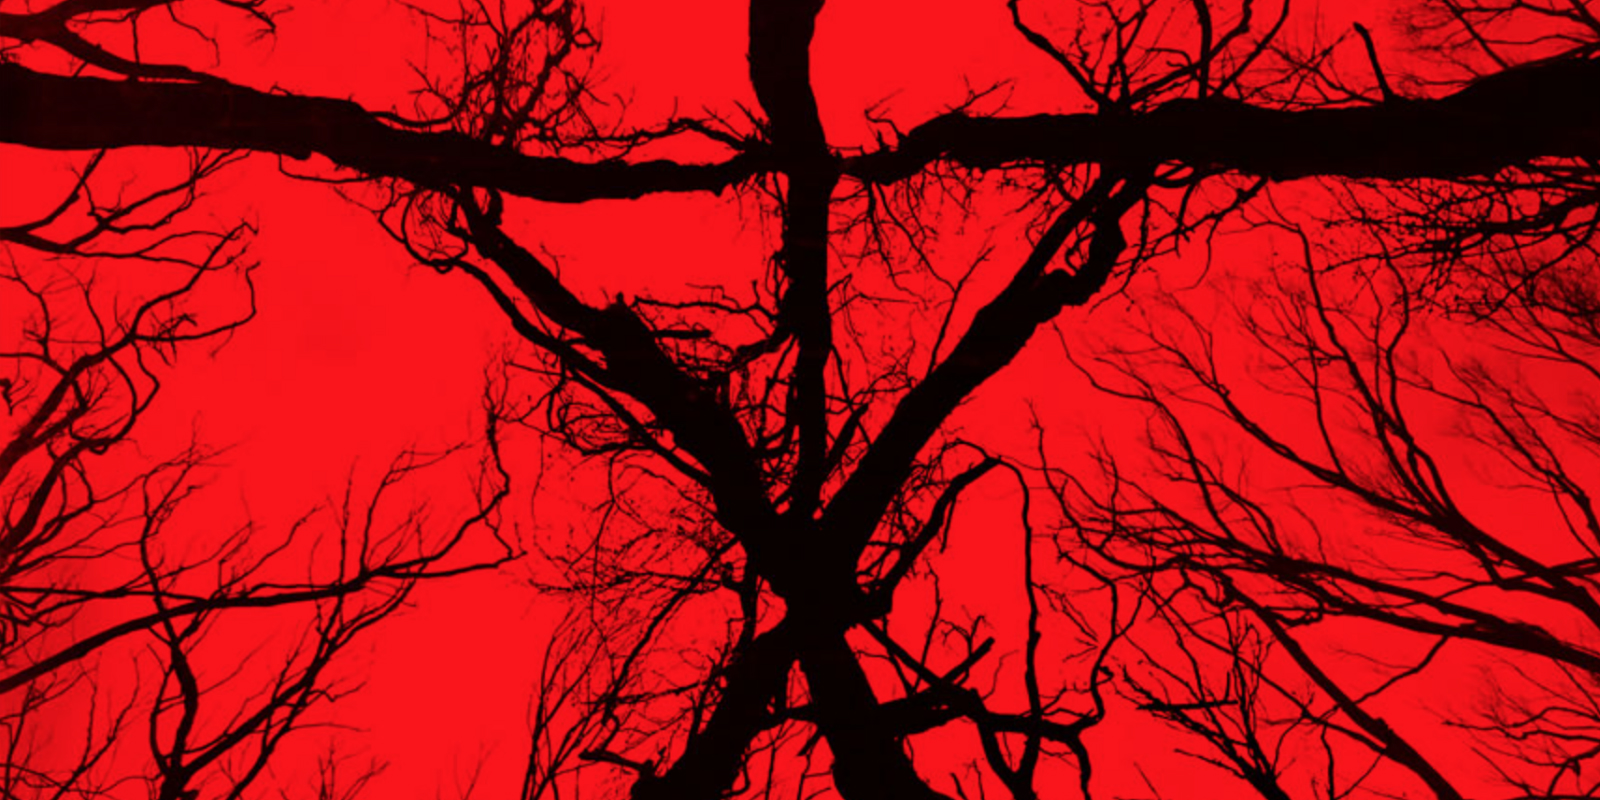 MOVIES: Blair Witch - Review